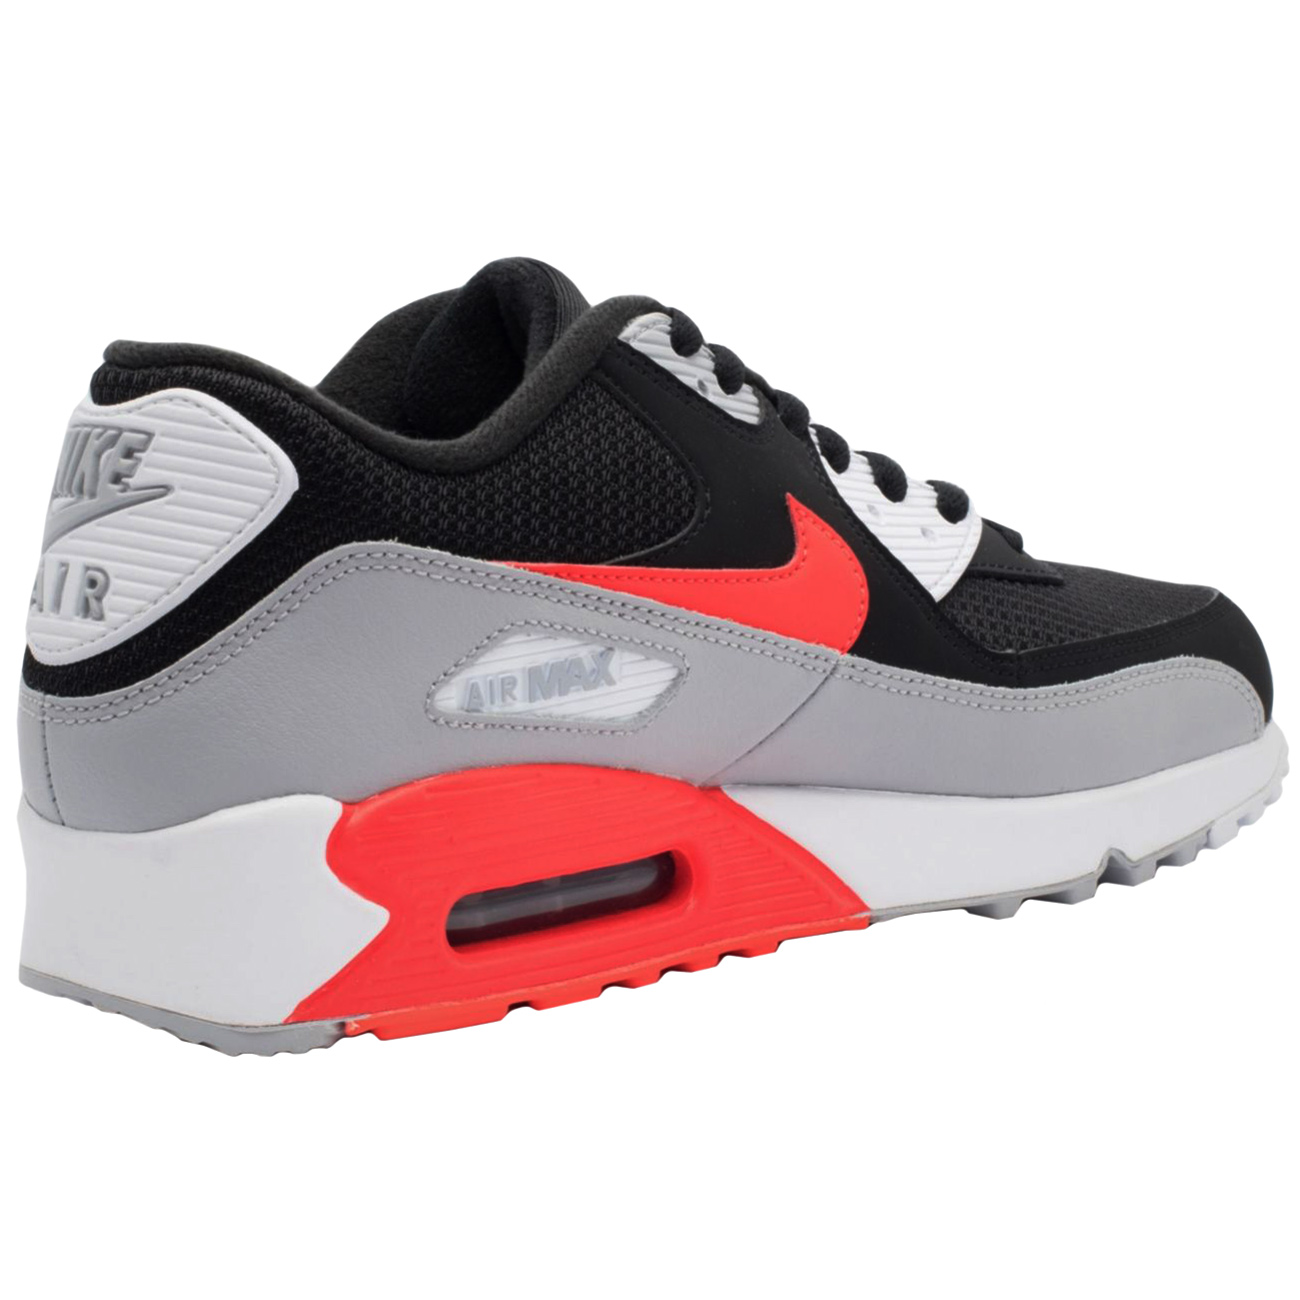 nike air max 90 essential herren sneaker schwarz grau rot. Black Bedroom Furniture Sets. Home Design Ideas